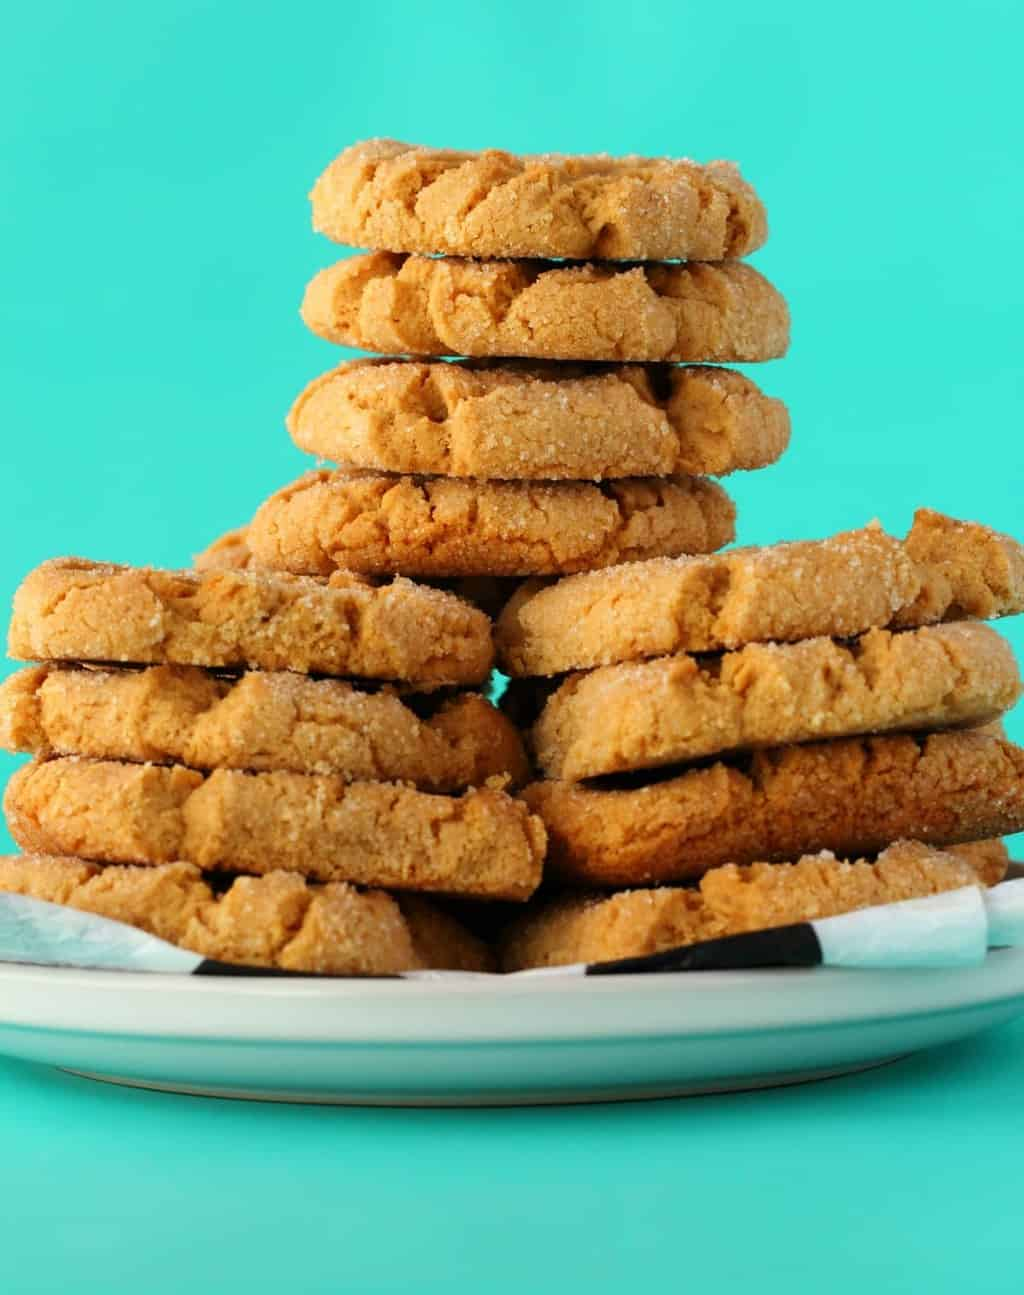 Vegan Peanut Butter Cookies stacked up on a white plate.